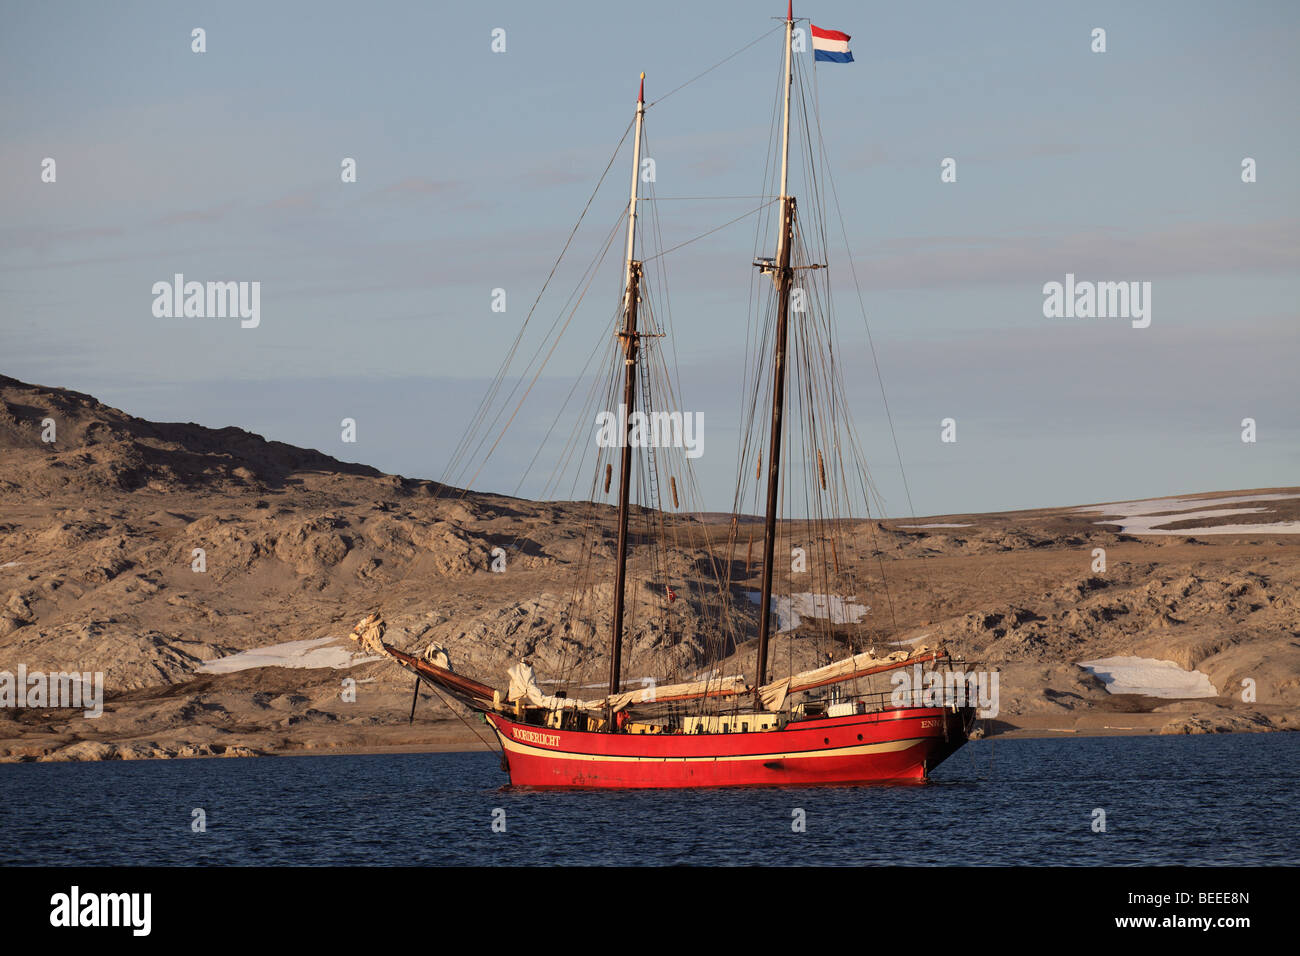 Tall Sailing Ship in the arctic ocean north of Svalbard - Stock Image